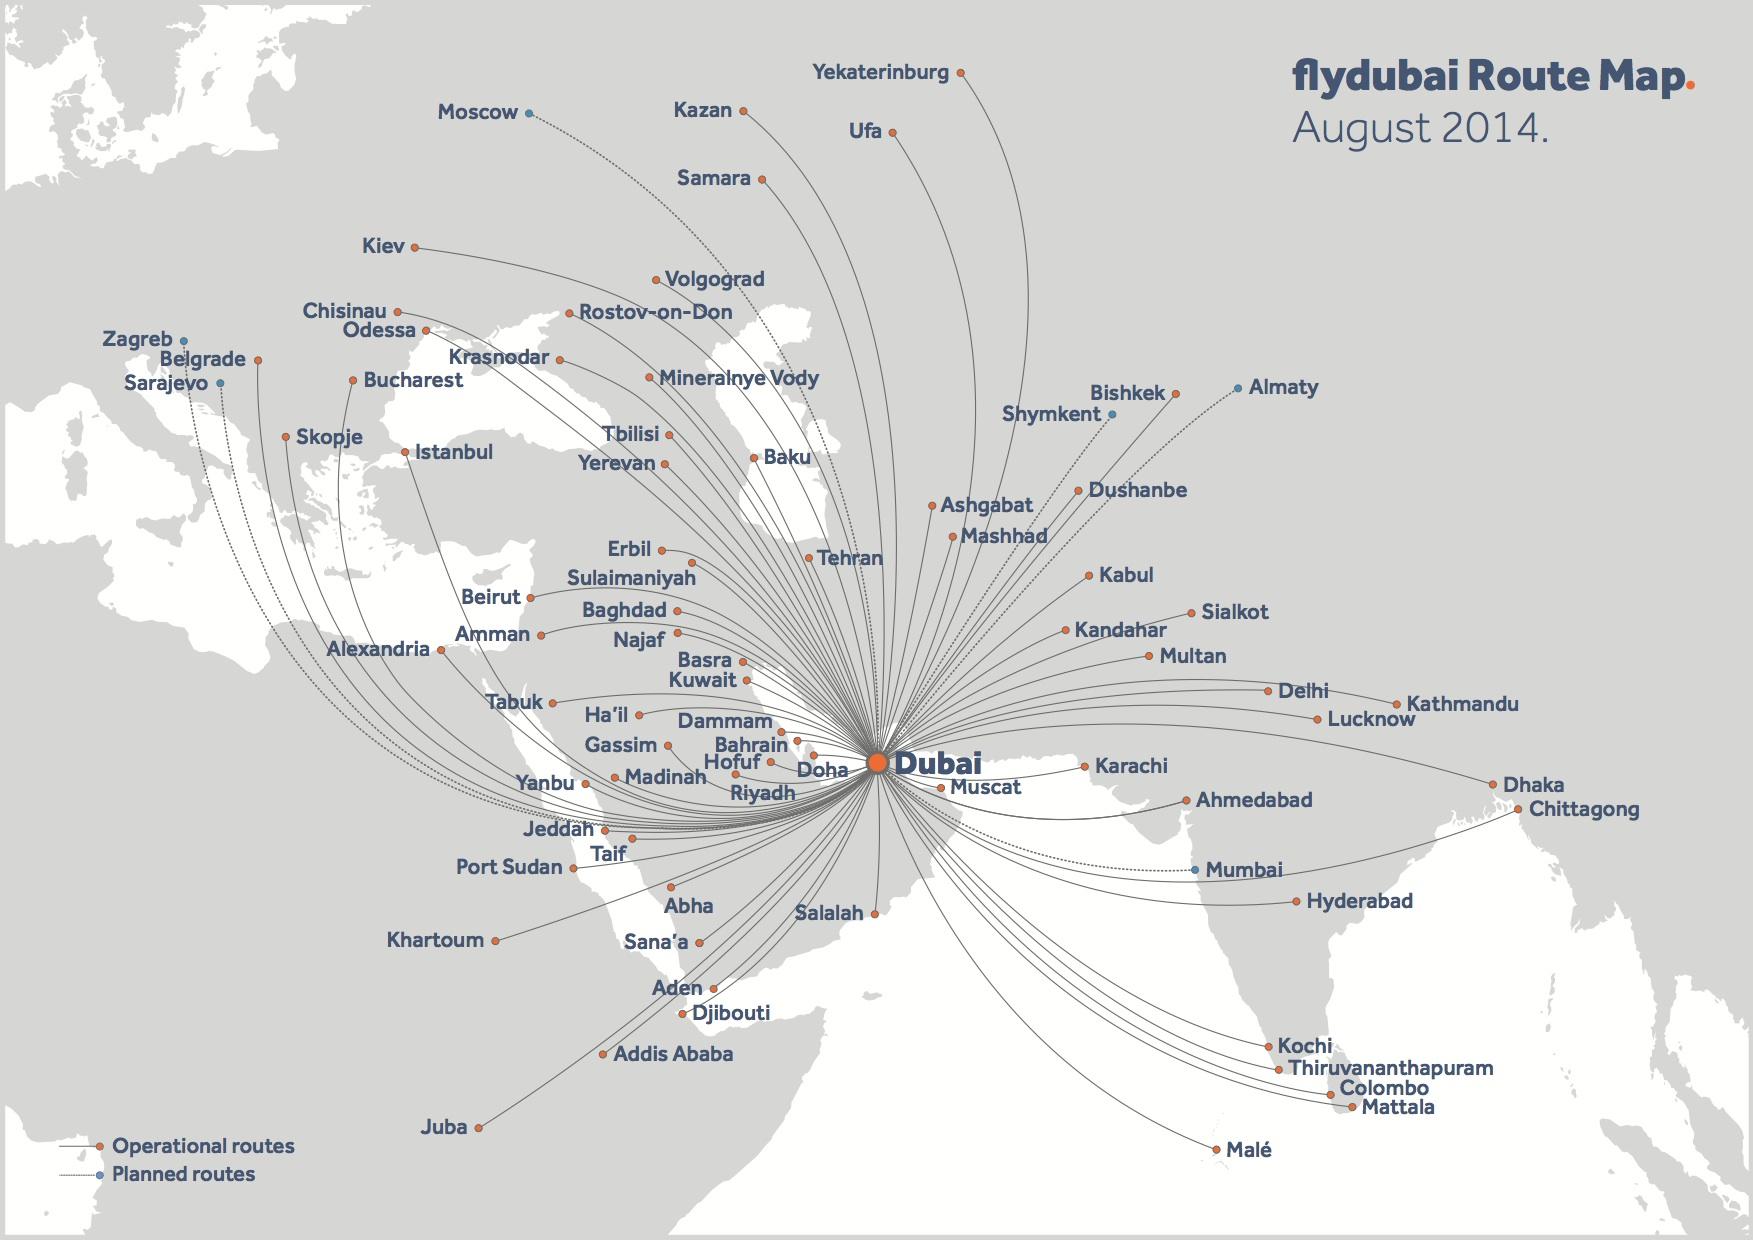 Flydubai adds three more routes reaches 80 destinations world expanded route map flydubai 82014 route map publicscrutiny